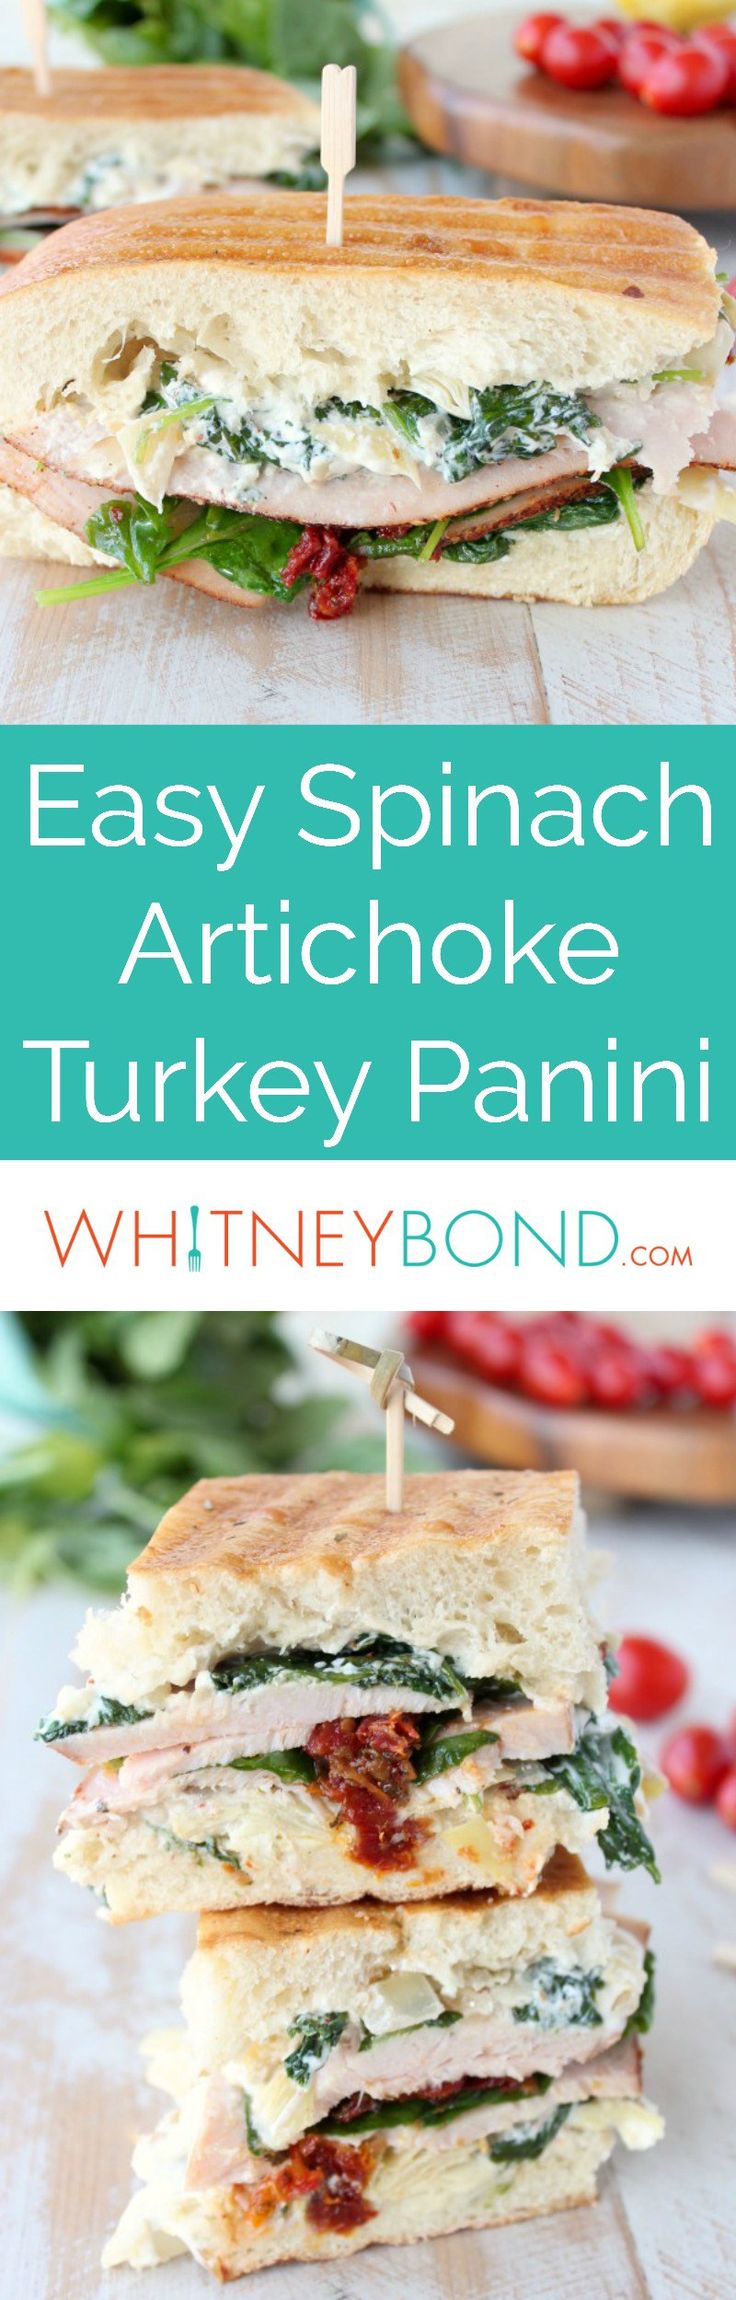 A deliciously creamy spinach artichoke dip is spread on thick, crusty ciabatta bread in this scrumptious, and simple, Turkey Panini recipe.